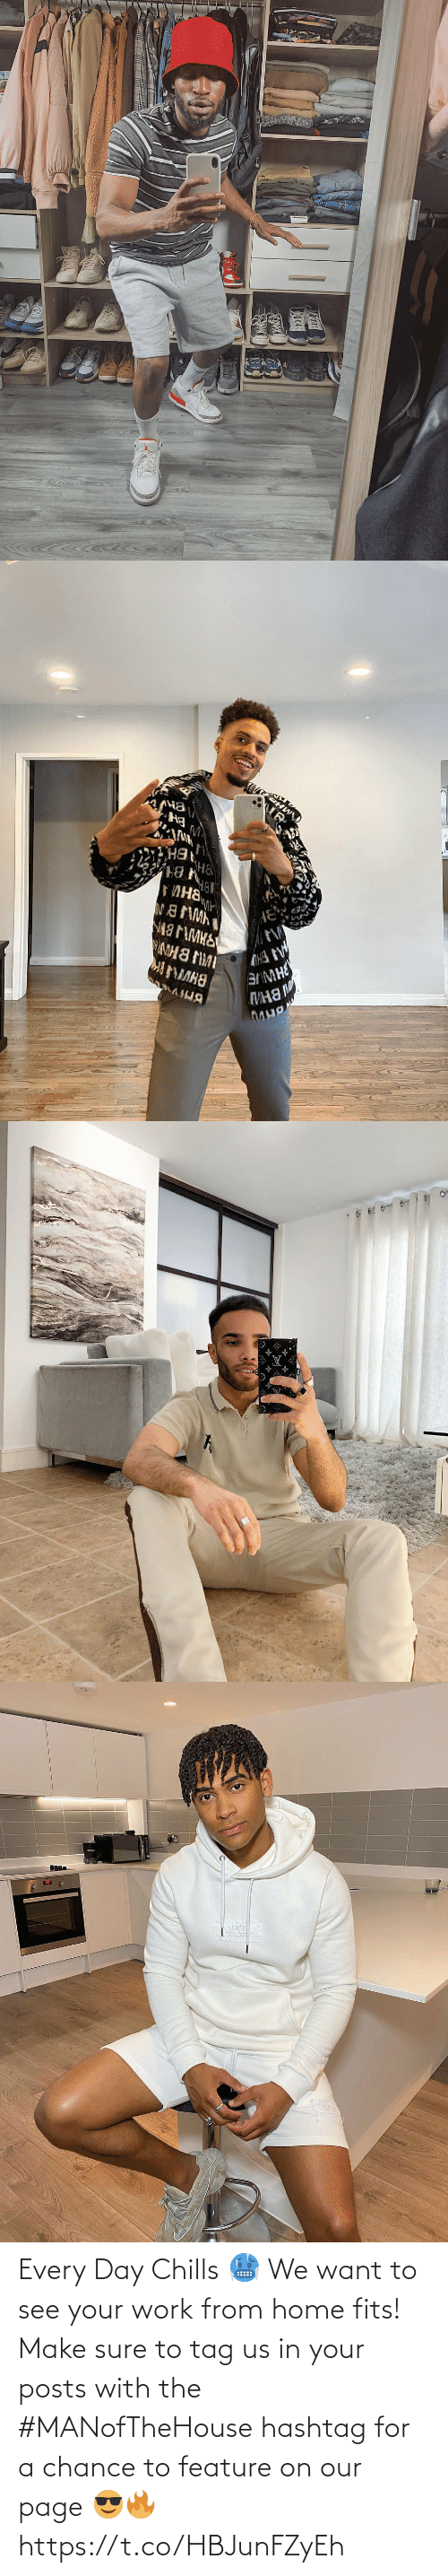 chills: Every Day Chills  🥶  We want to see your work from home fits! Make sure to tag us in your posts with the #MANofTheHouse hashtag for a chance to feature on our page 😎🔥 https://t.co/HBJunFZyEh